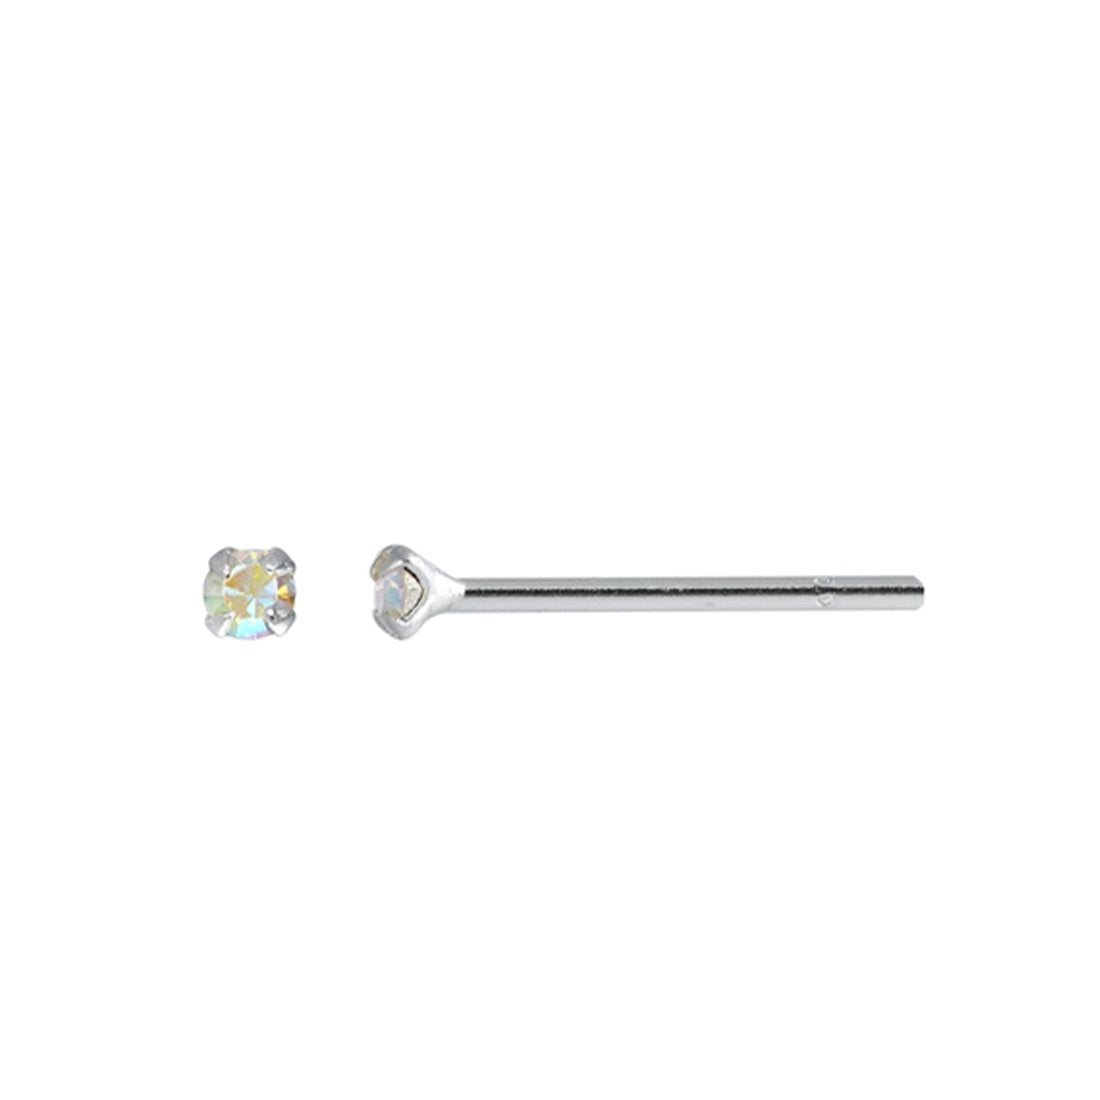 AB Crystal Simulated Cubic Zirconia Nose Stud 925 Sterling Silver-(20 Nose Studs in a Box)